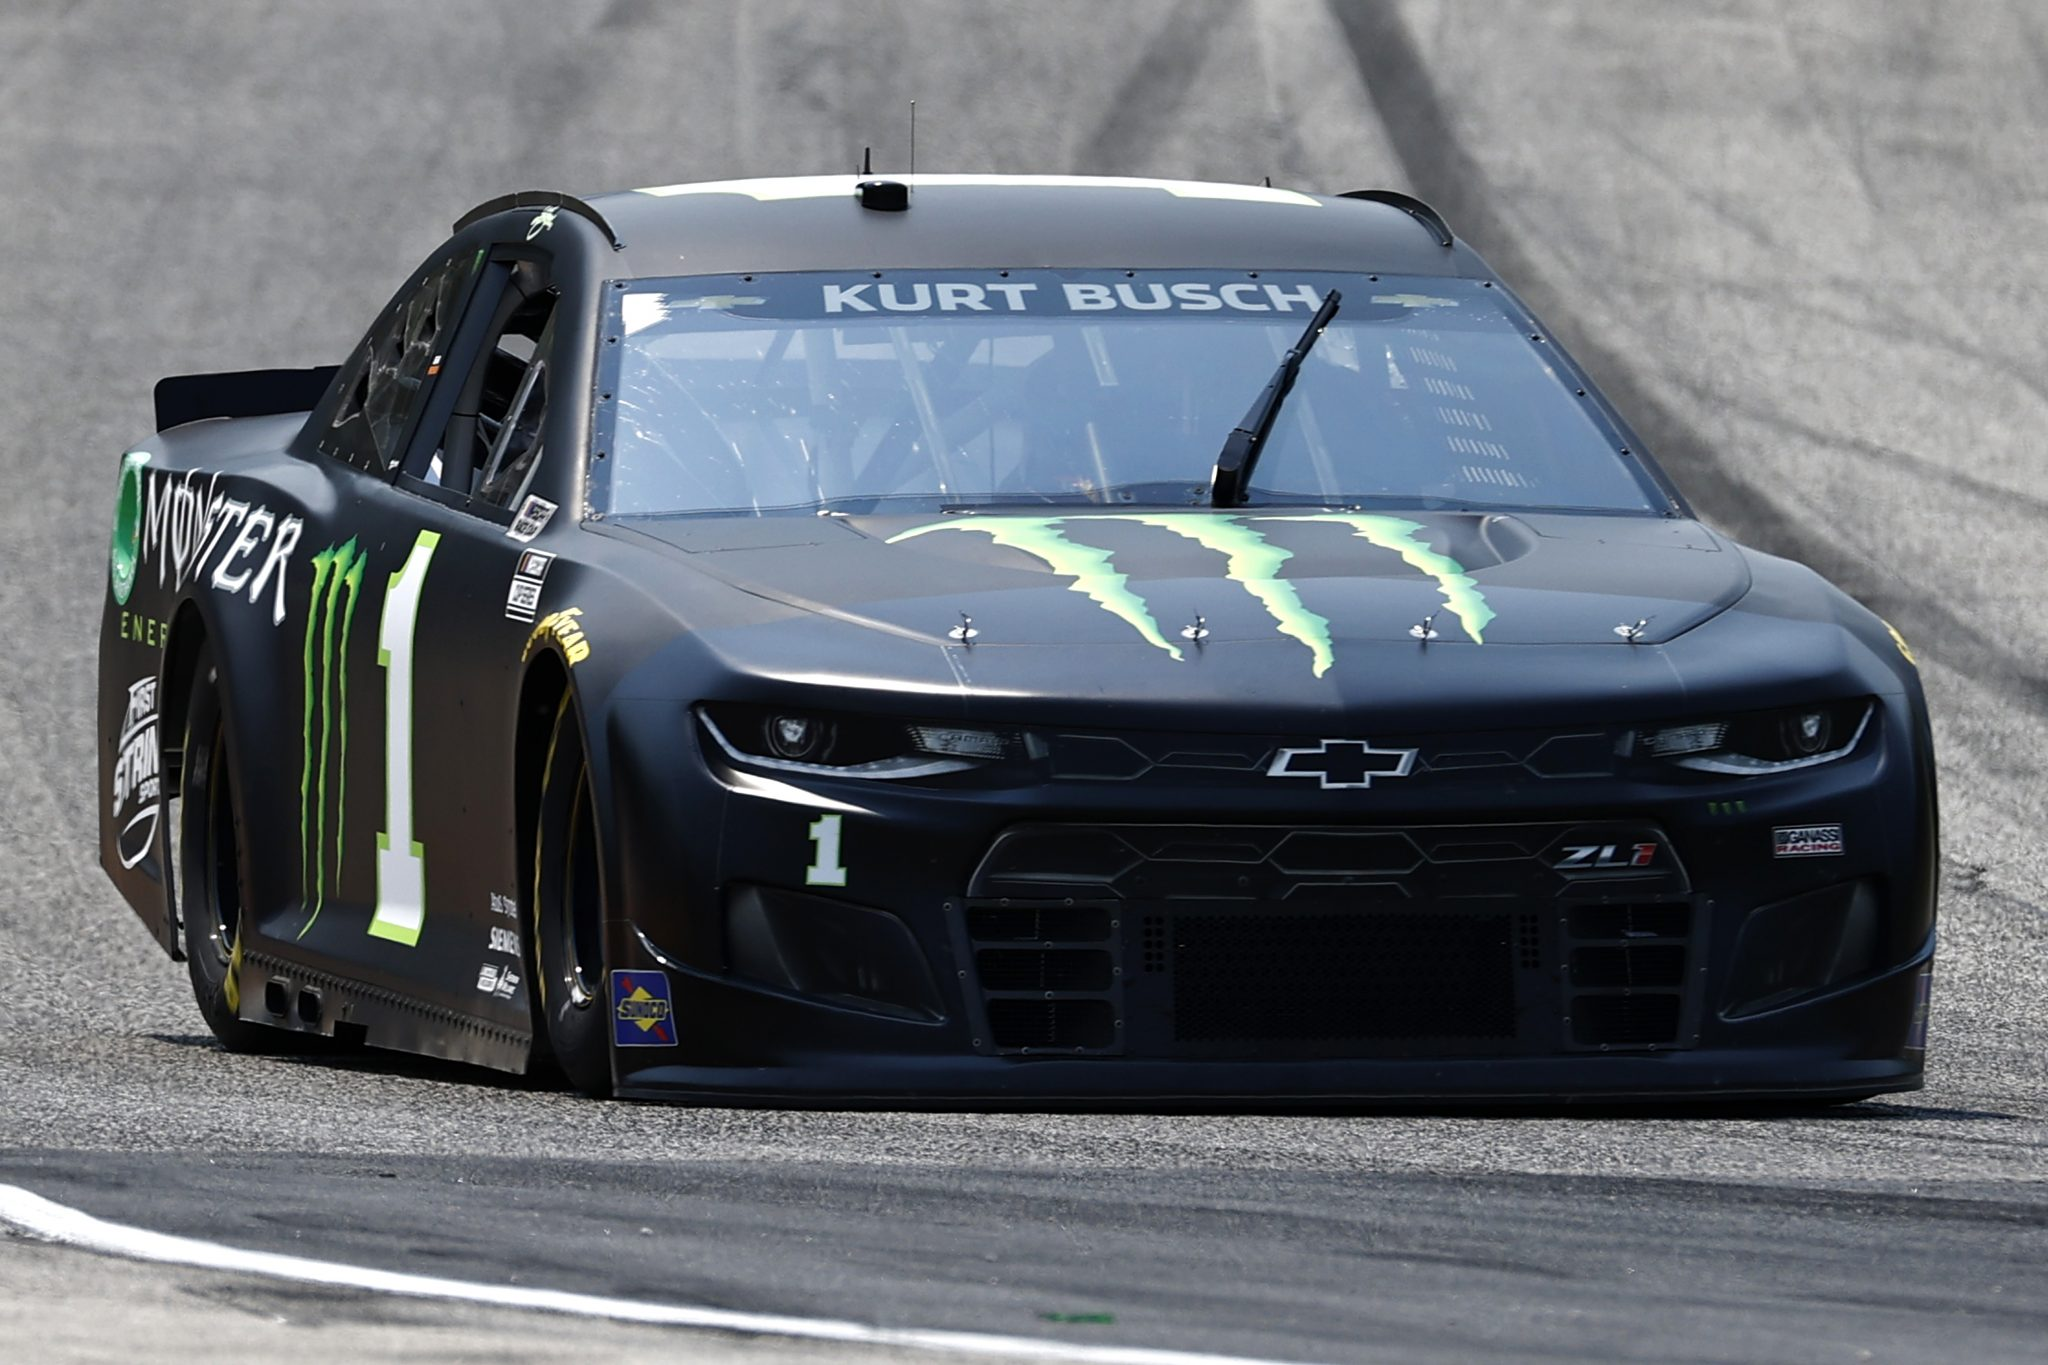 ELKHART LAKE, WISCONSIN - JULY 03: Kurt Busch, driver of the #1 Monster Energy Chevrolet, drives during practice for the NASCAR Cup Series Jockey Made in America 250 Presented by Kwik Trip at Road America on July 03, 2021 in Elkhart Lake, Wisconsin. (Photo by Jared C. Tilton/Getty Images) | Getty Images